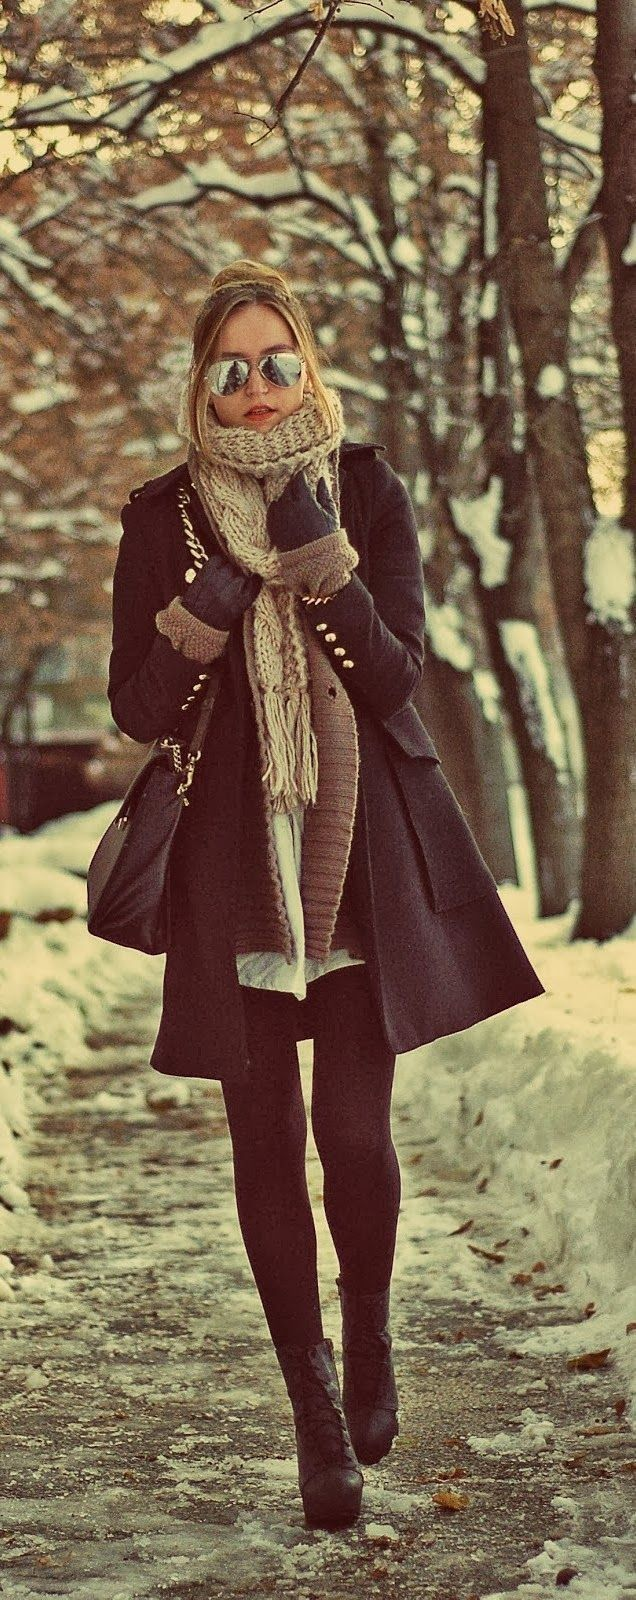 Leather sleeve wool coat paired with leather gloves. Hot!